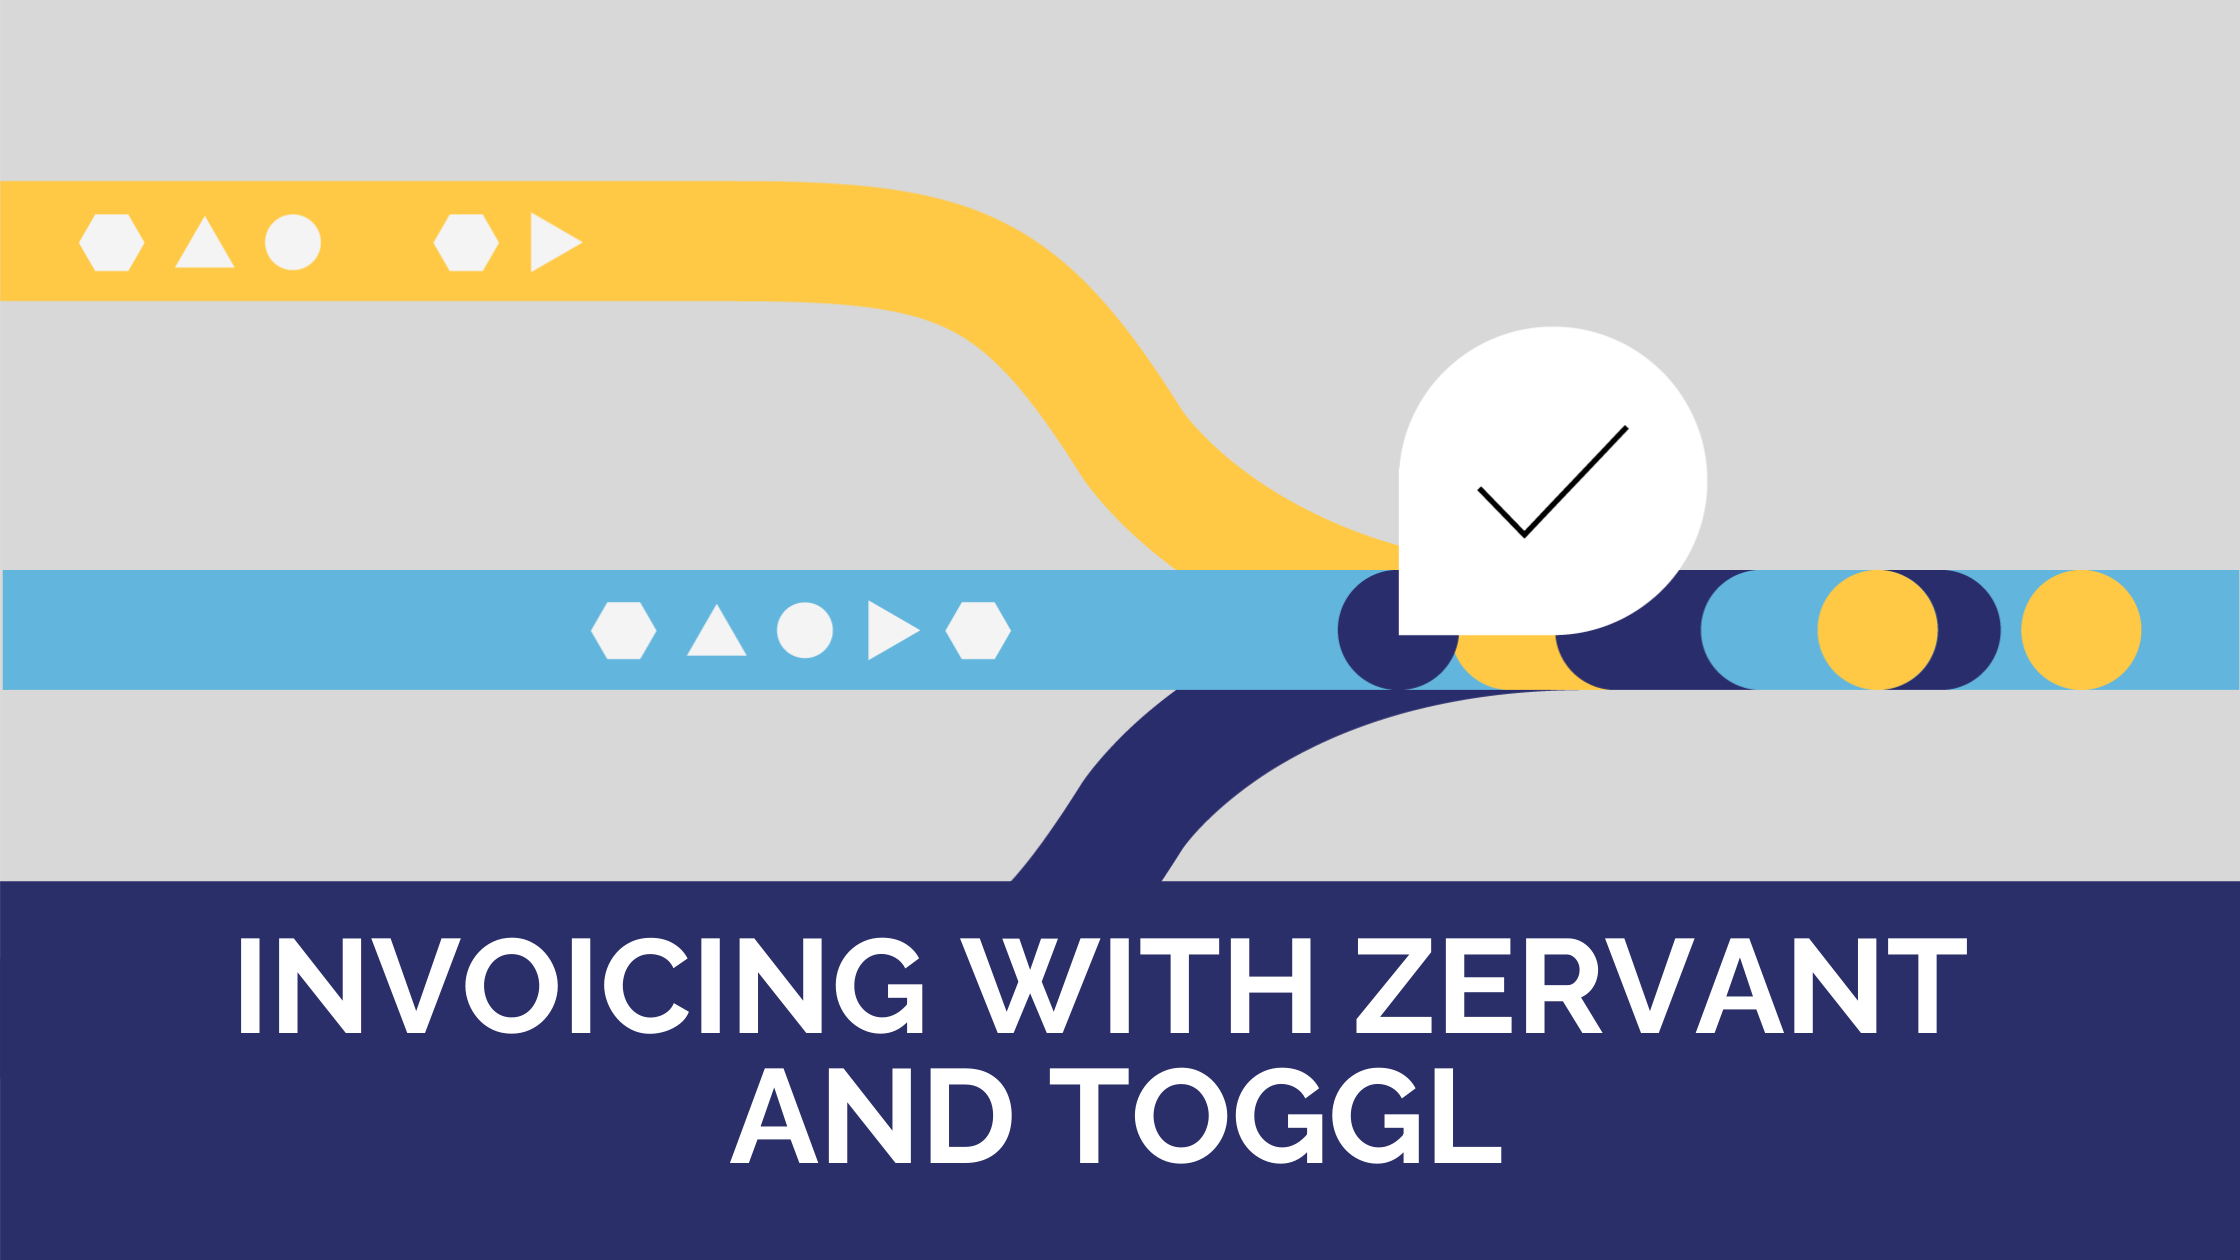 Invoicing with Zervant and Toggl